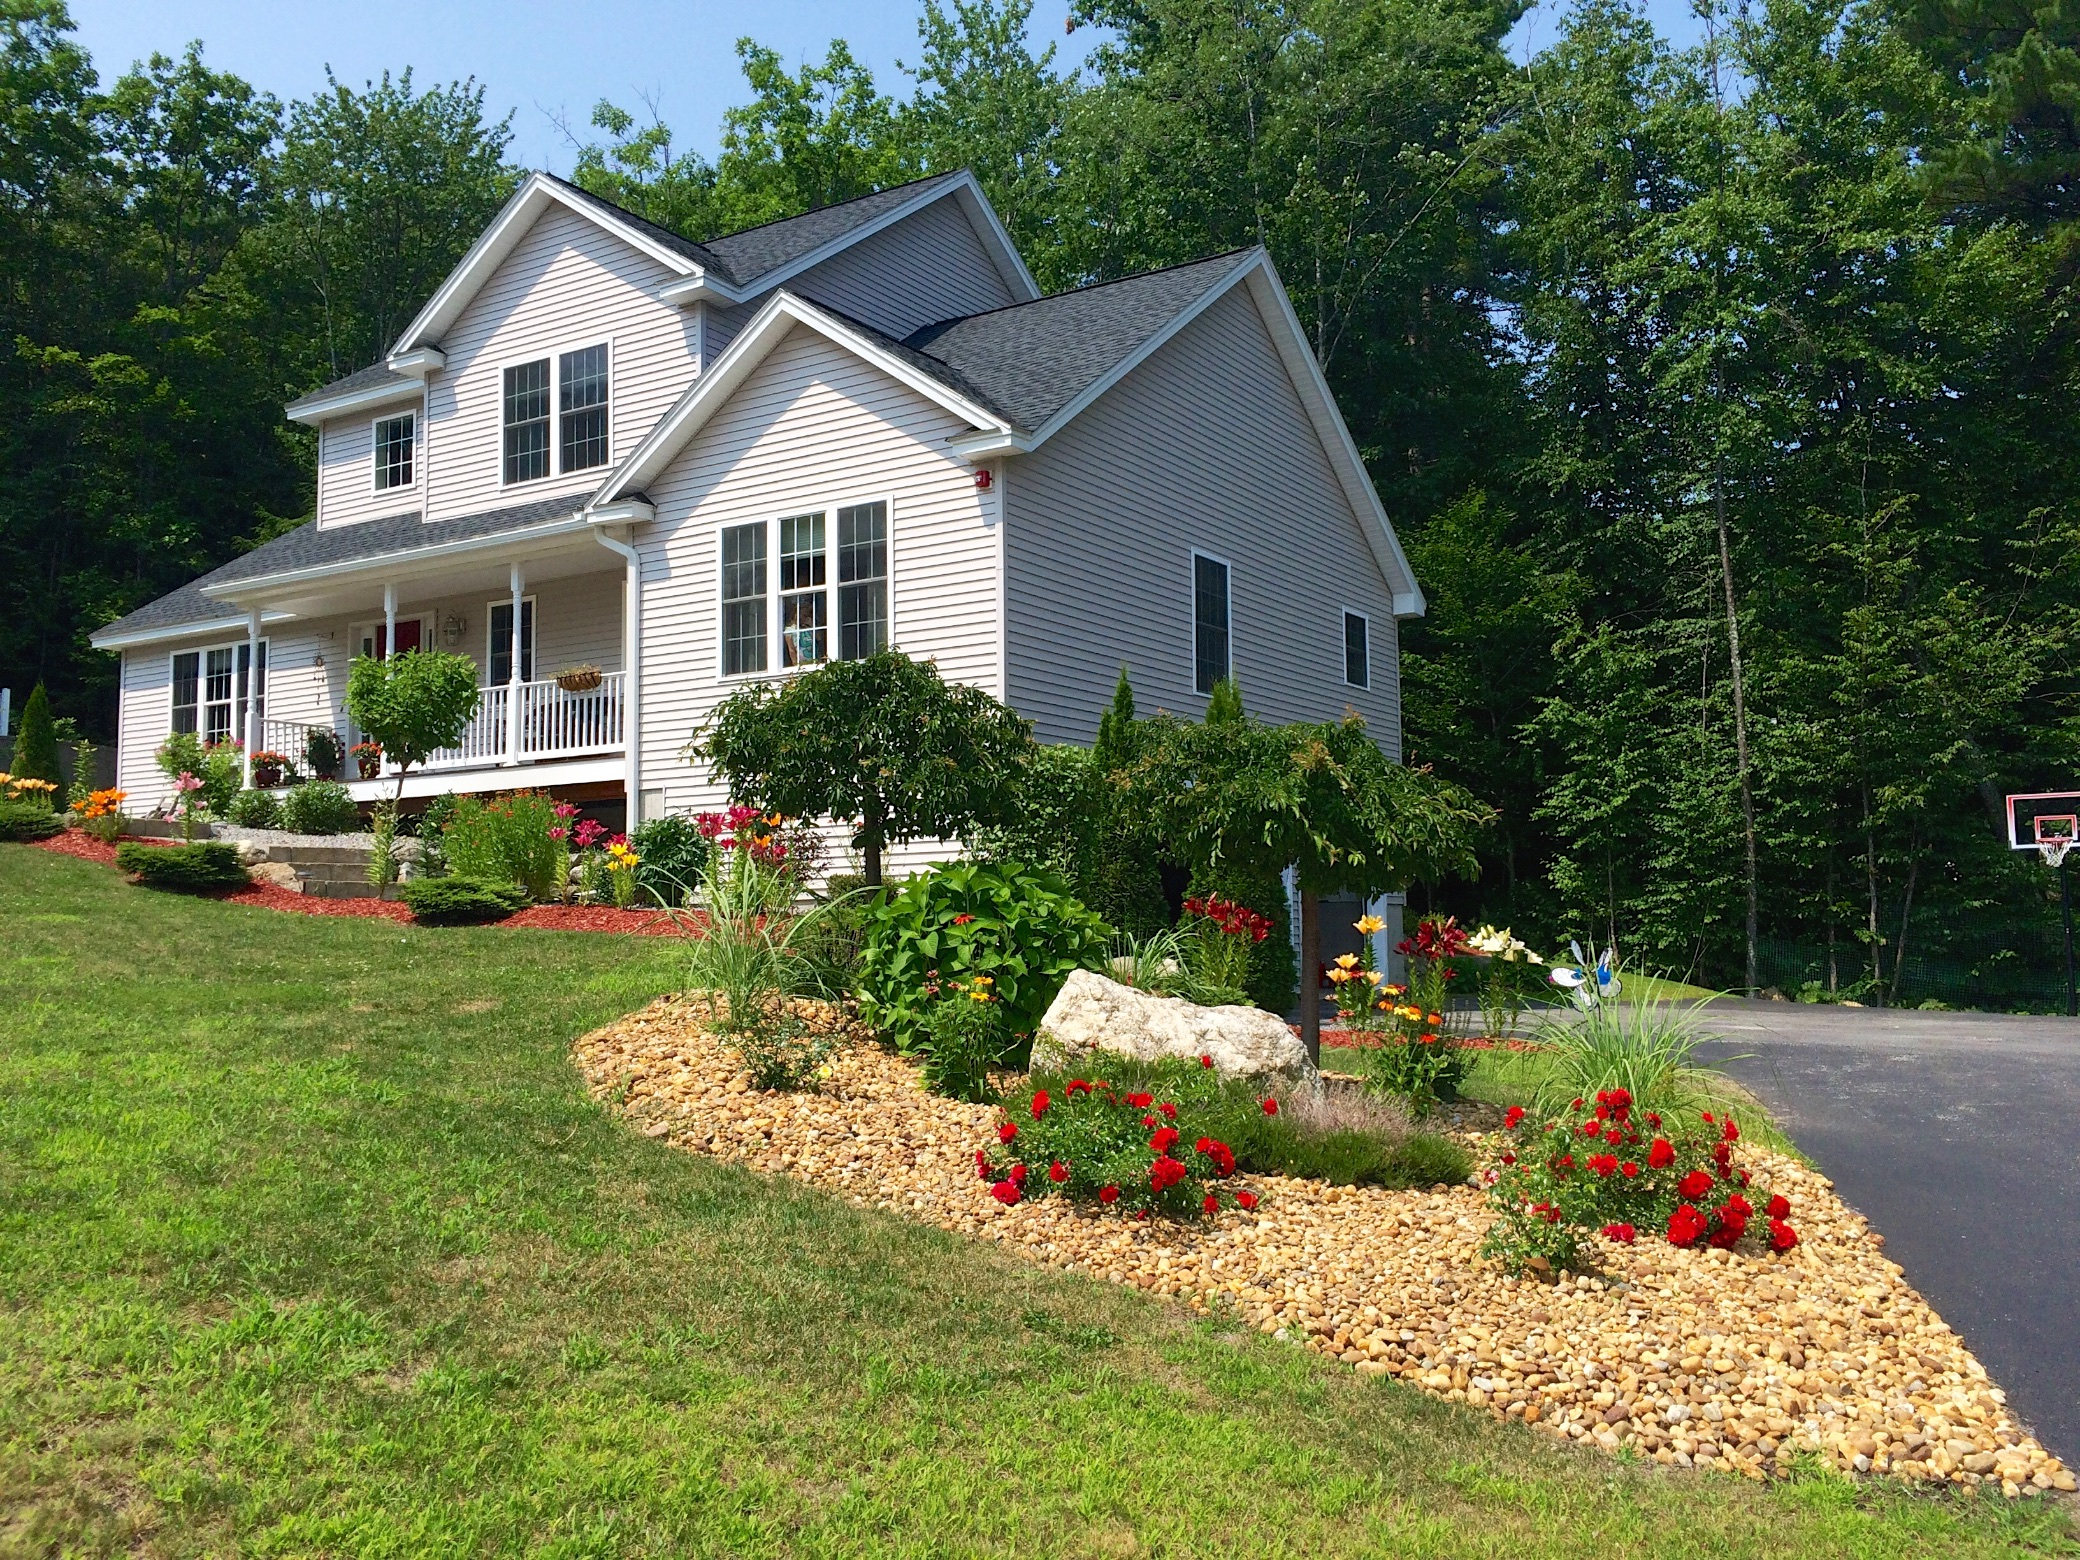 Single Family Home for Sale at 35 Sterling Dr, Laconia Laconia, New Hampshire, 03246 United States